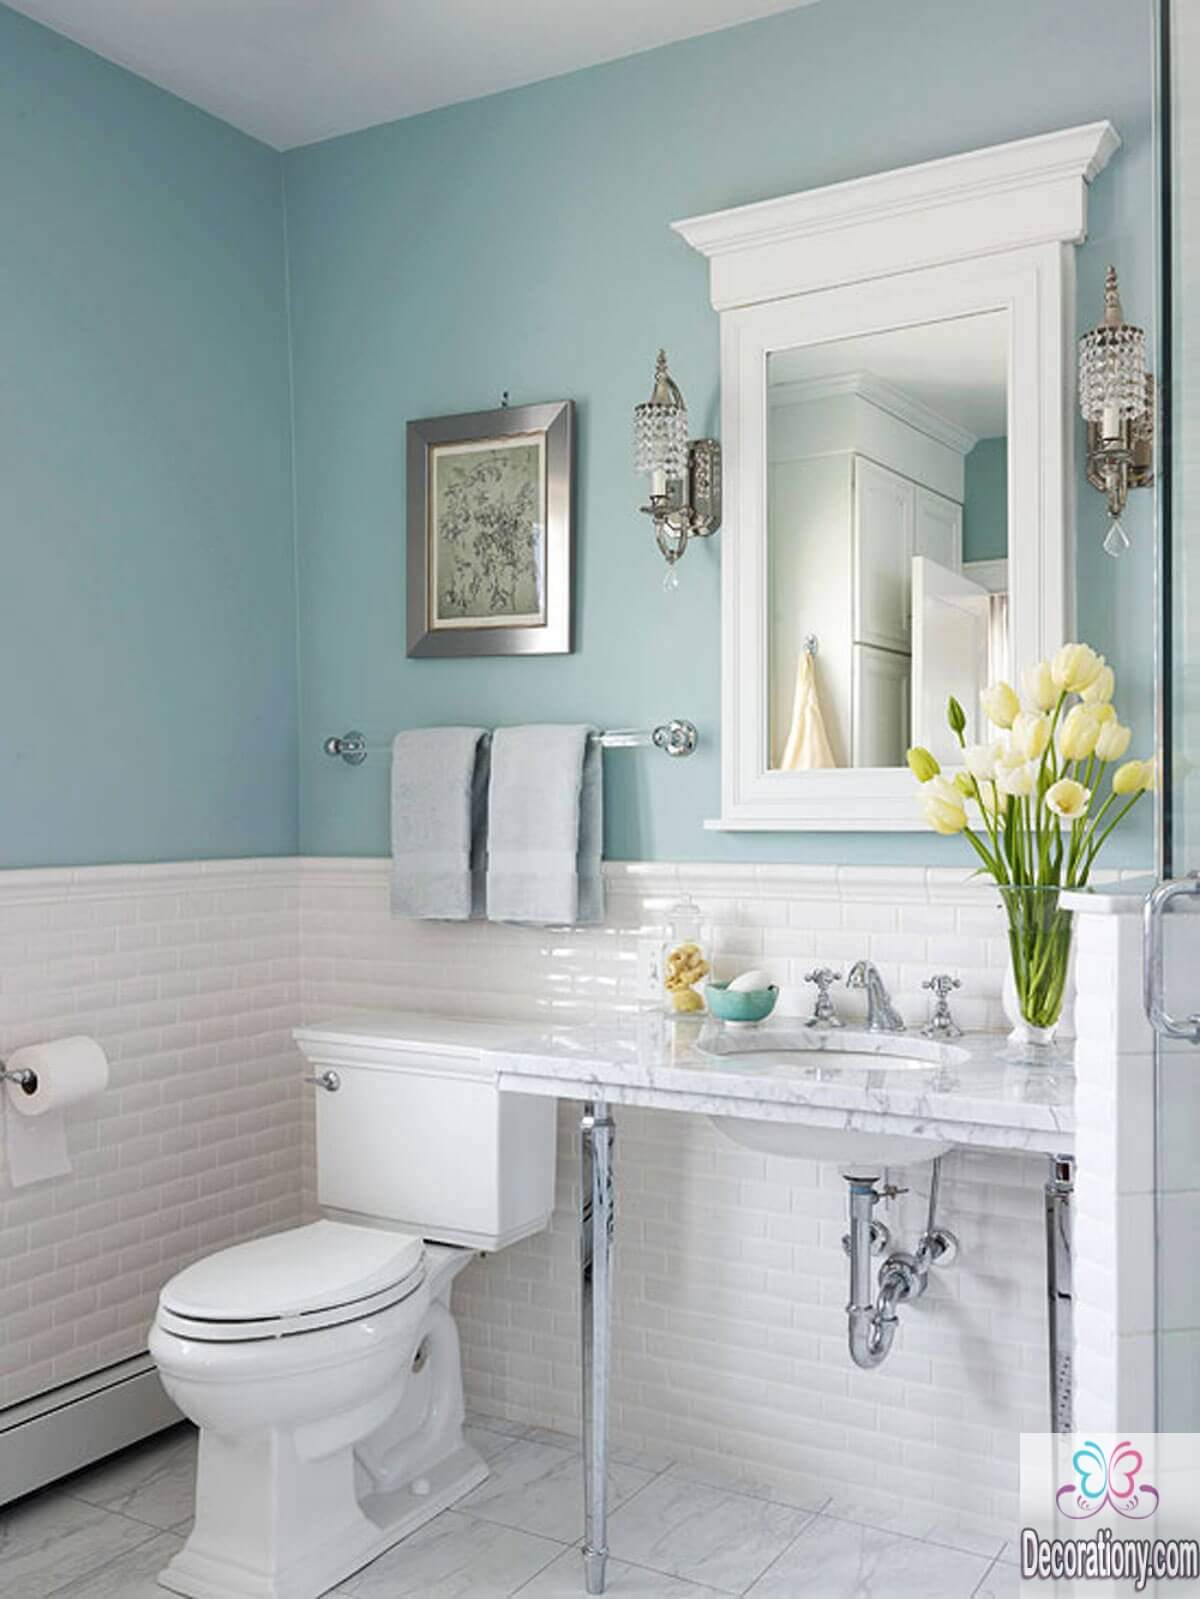 10 affordable colors for small bathrooms decoration y ForBathroom Colors For Small Bathroom